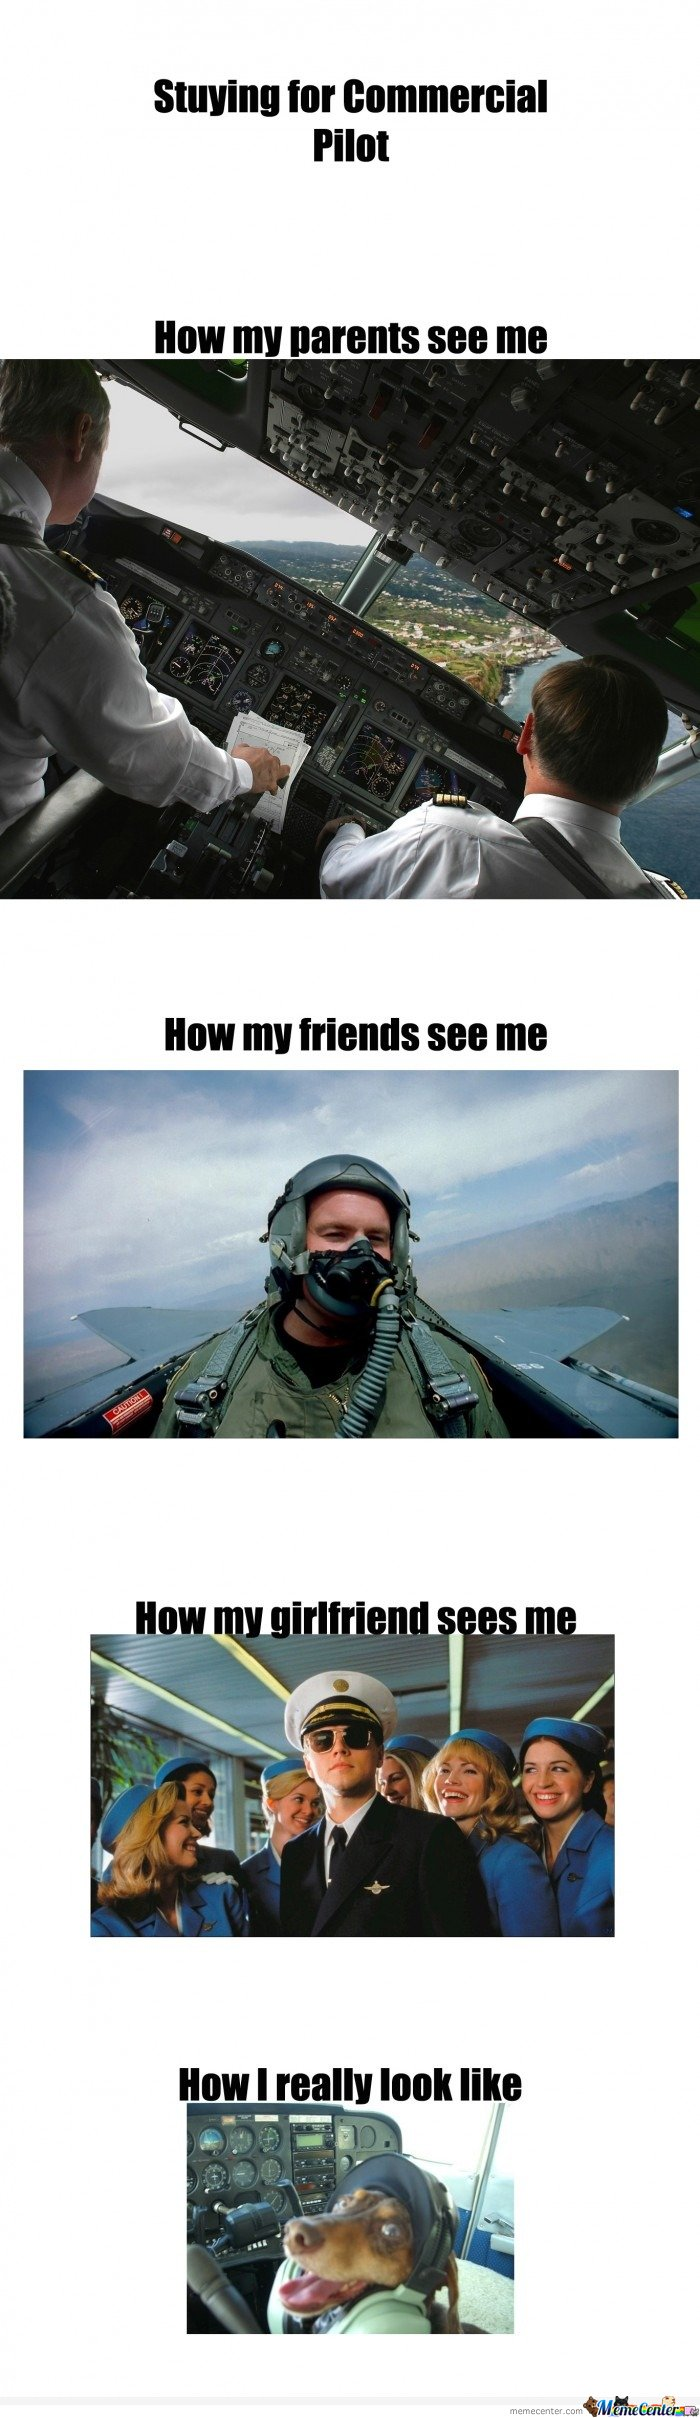 How people see me - Pilot